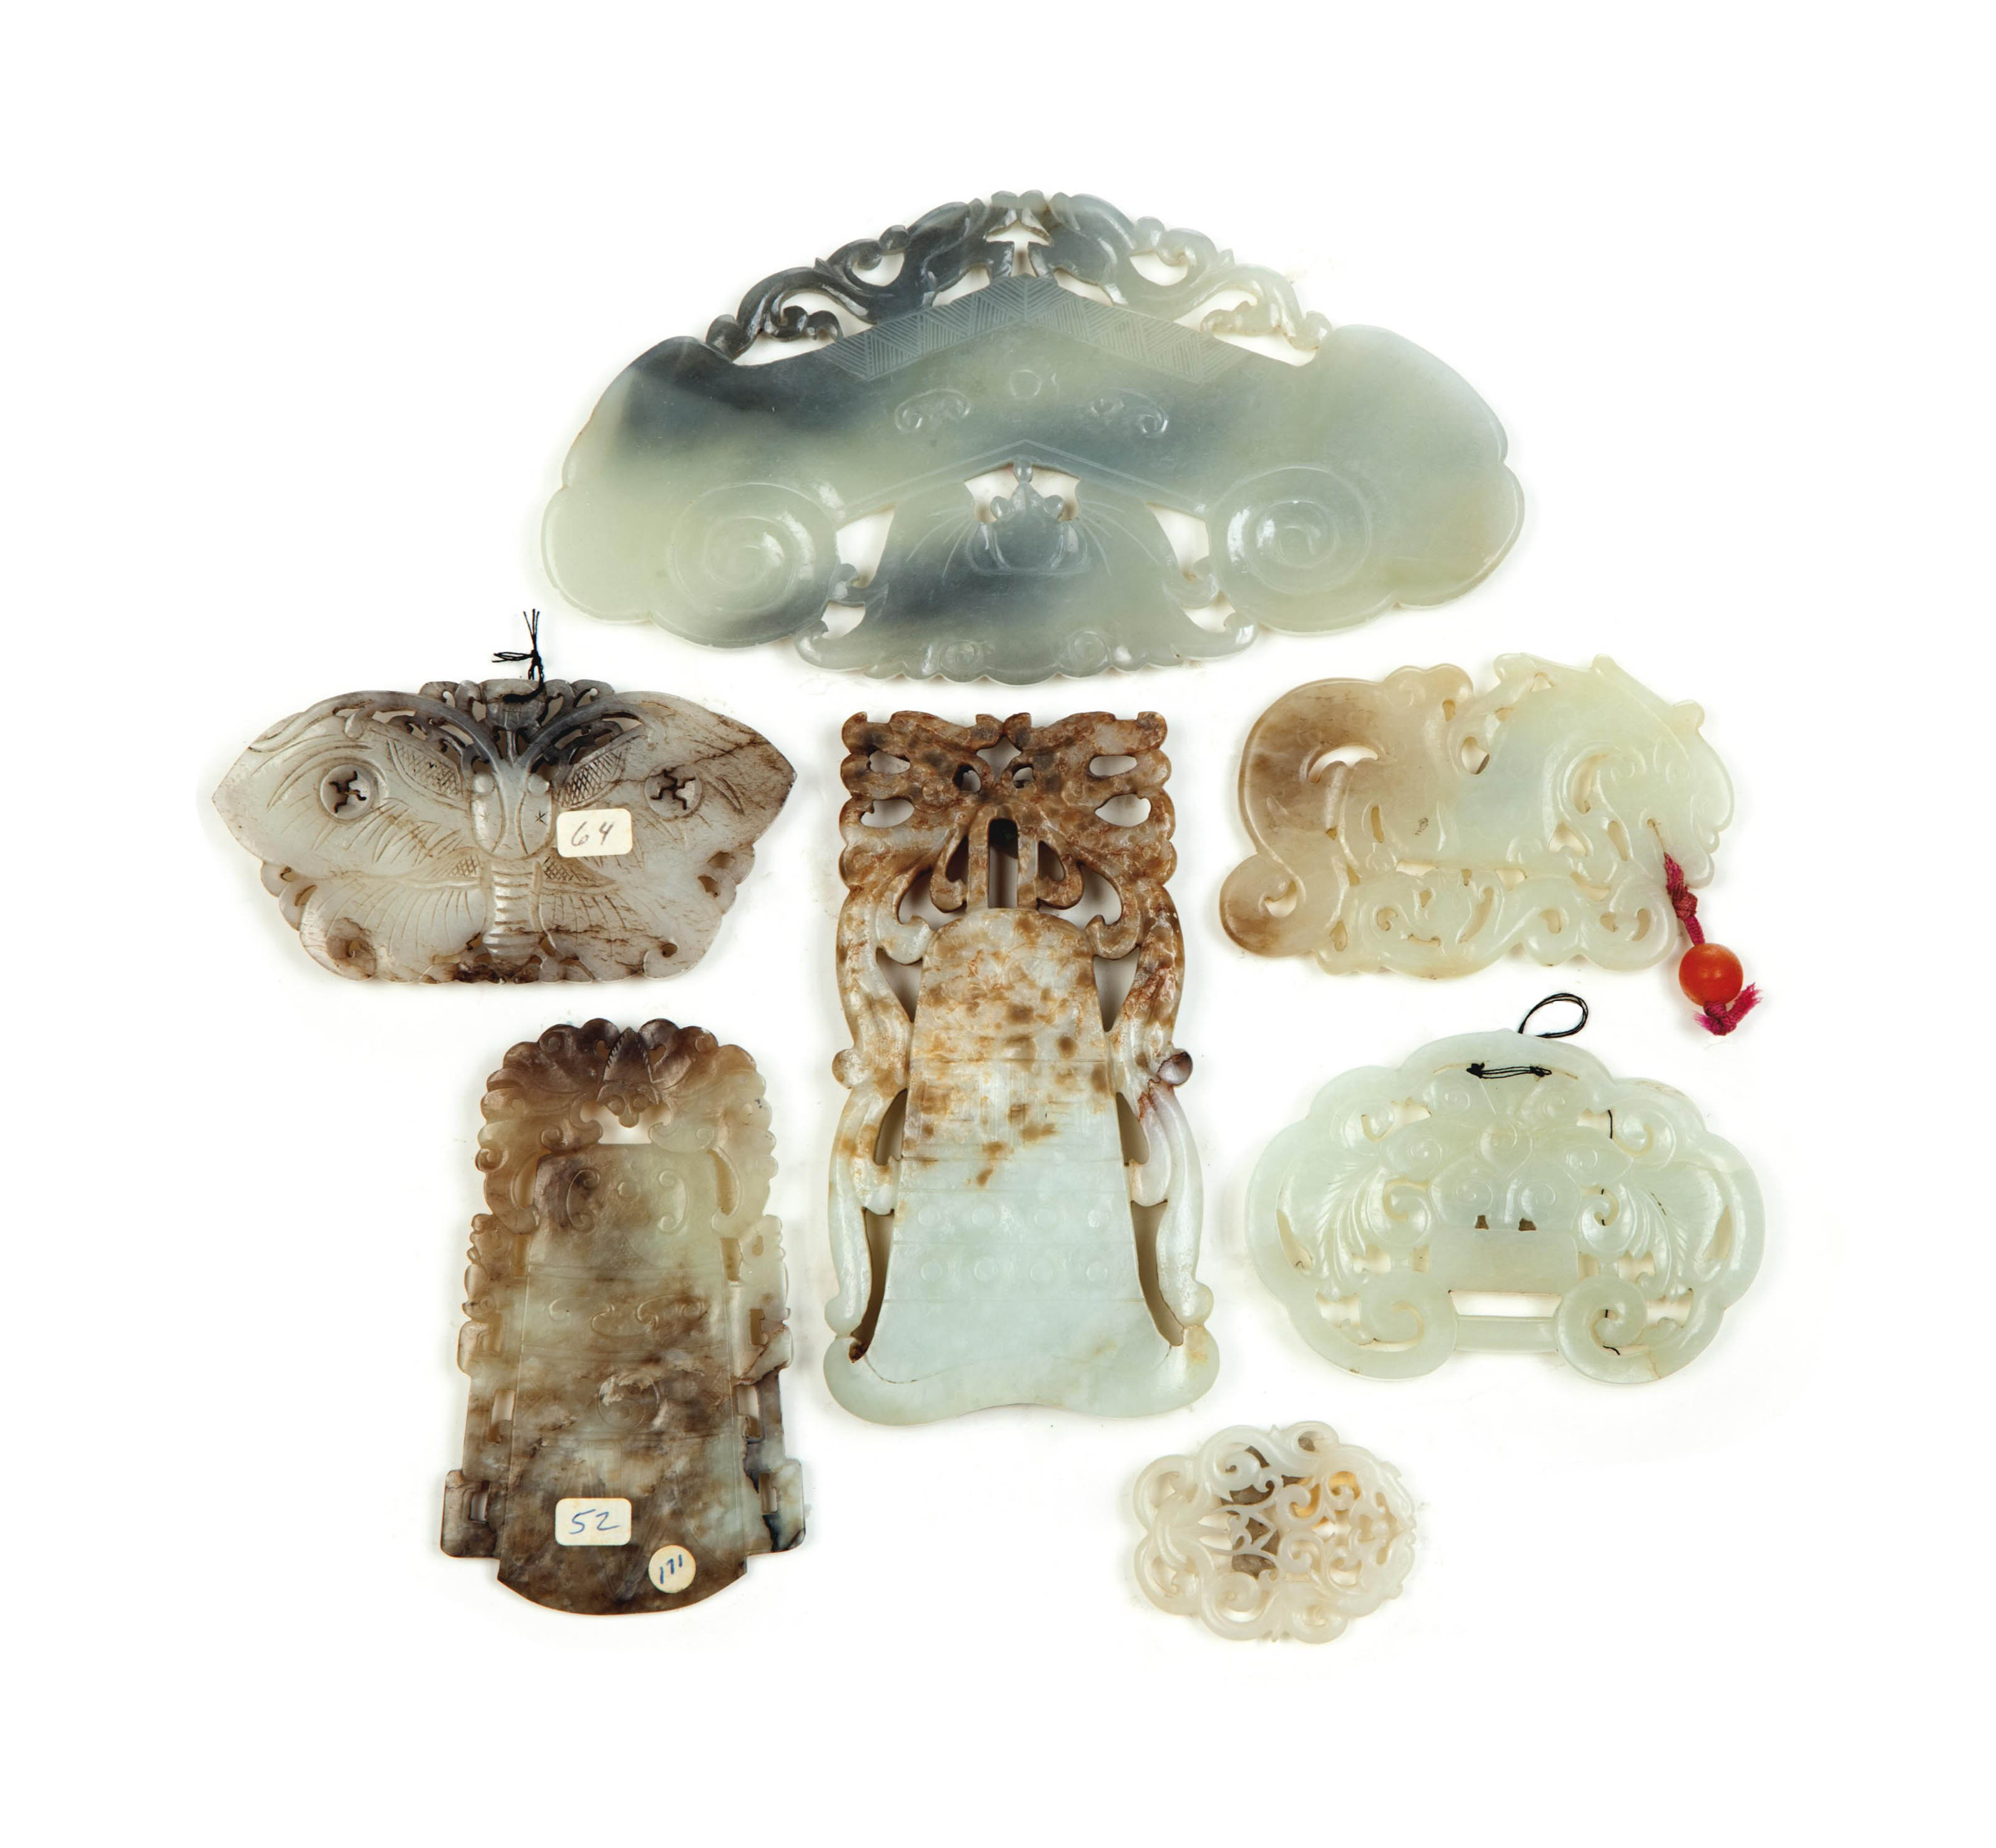 SEVEN CHINESE PALE BEIGE AND GREY JADE ARCHAISTIC PENDANTS